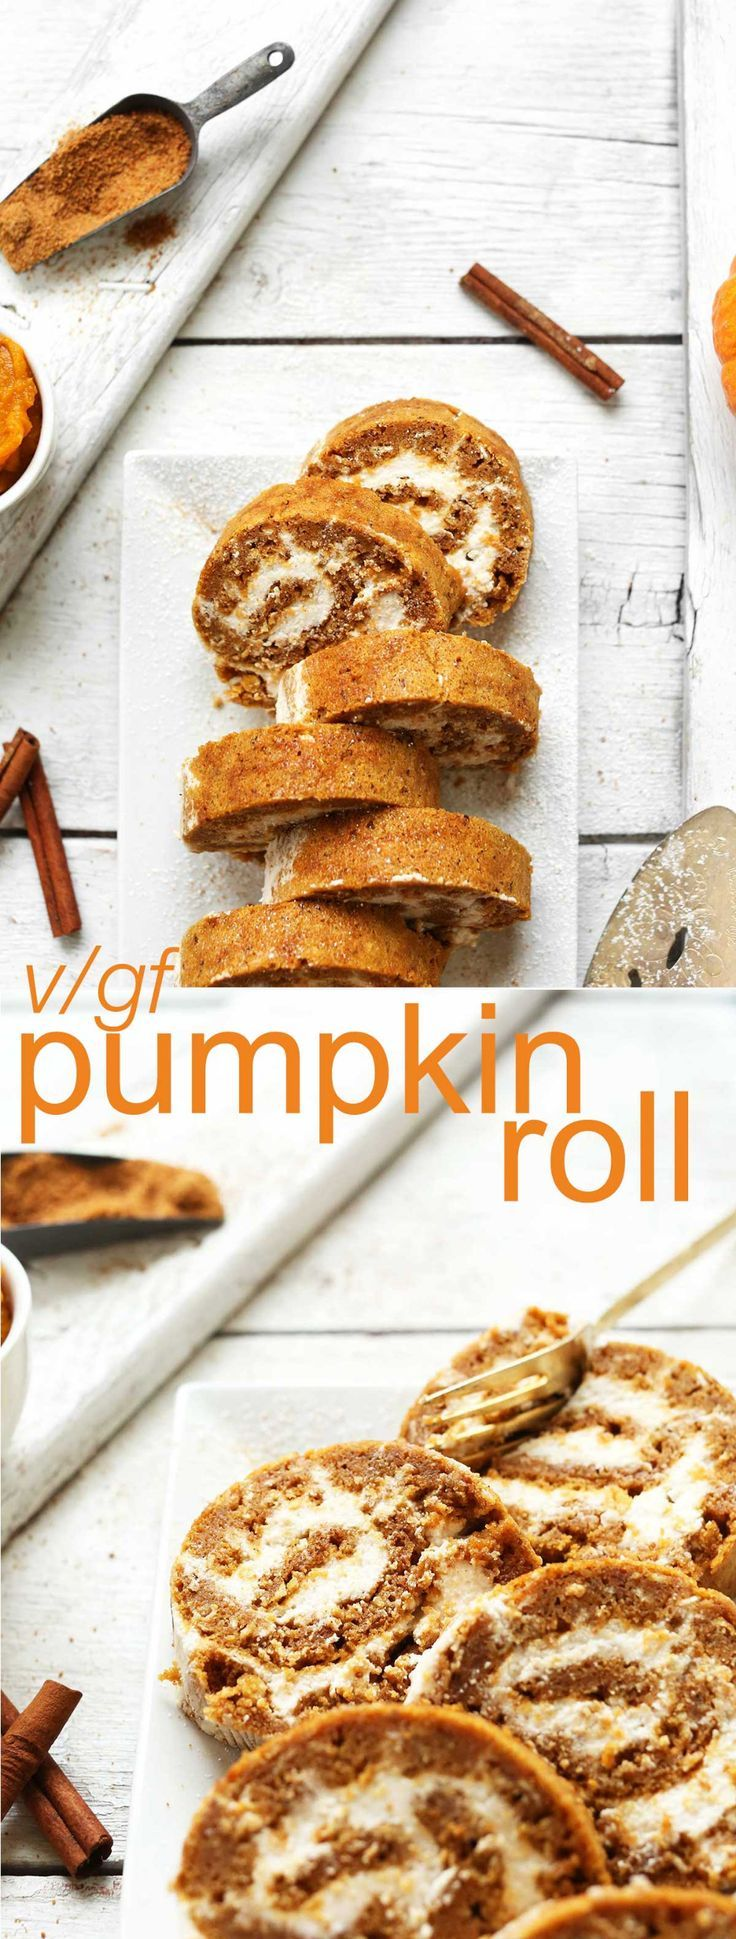 Photo of Vegan Gluten Free Pumpkin Roll | Minimalist Baker Recipes